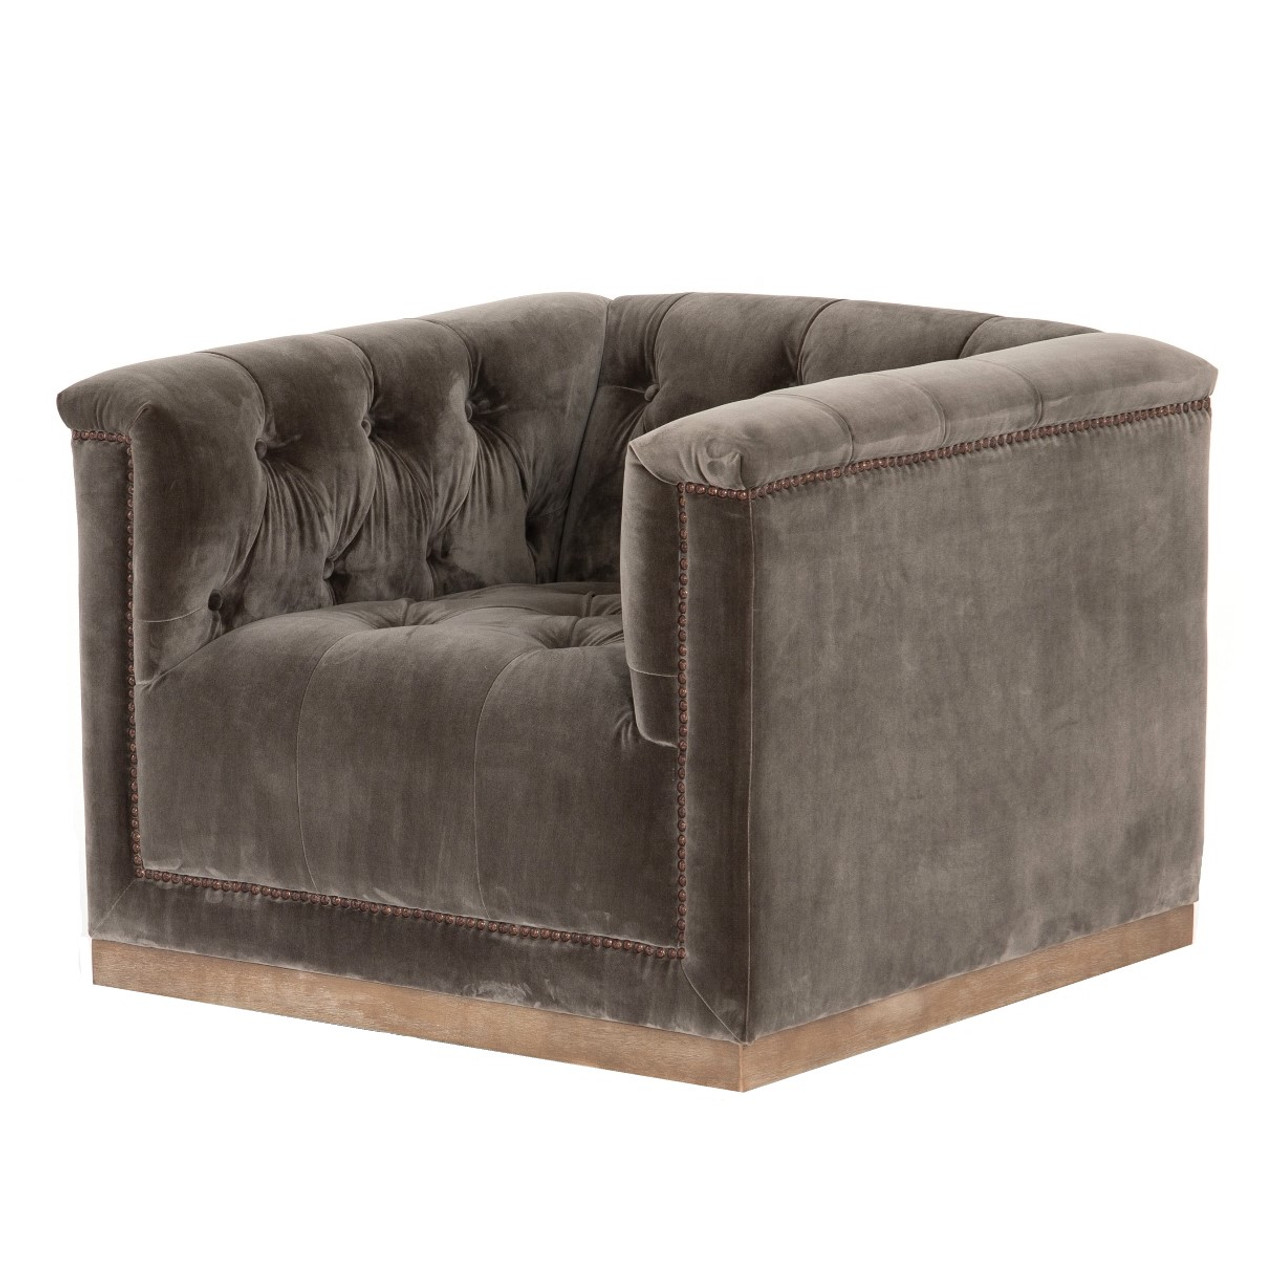 Stupendous Maxx Birch Brown Tufted Modern Swivel Club Chair Gmtry Best Dining Table And Chair Ideas Images Gmtryco